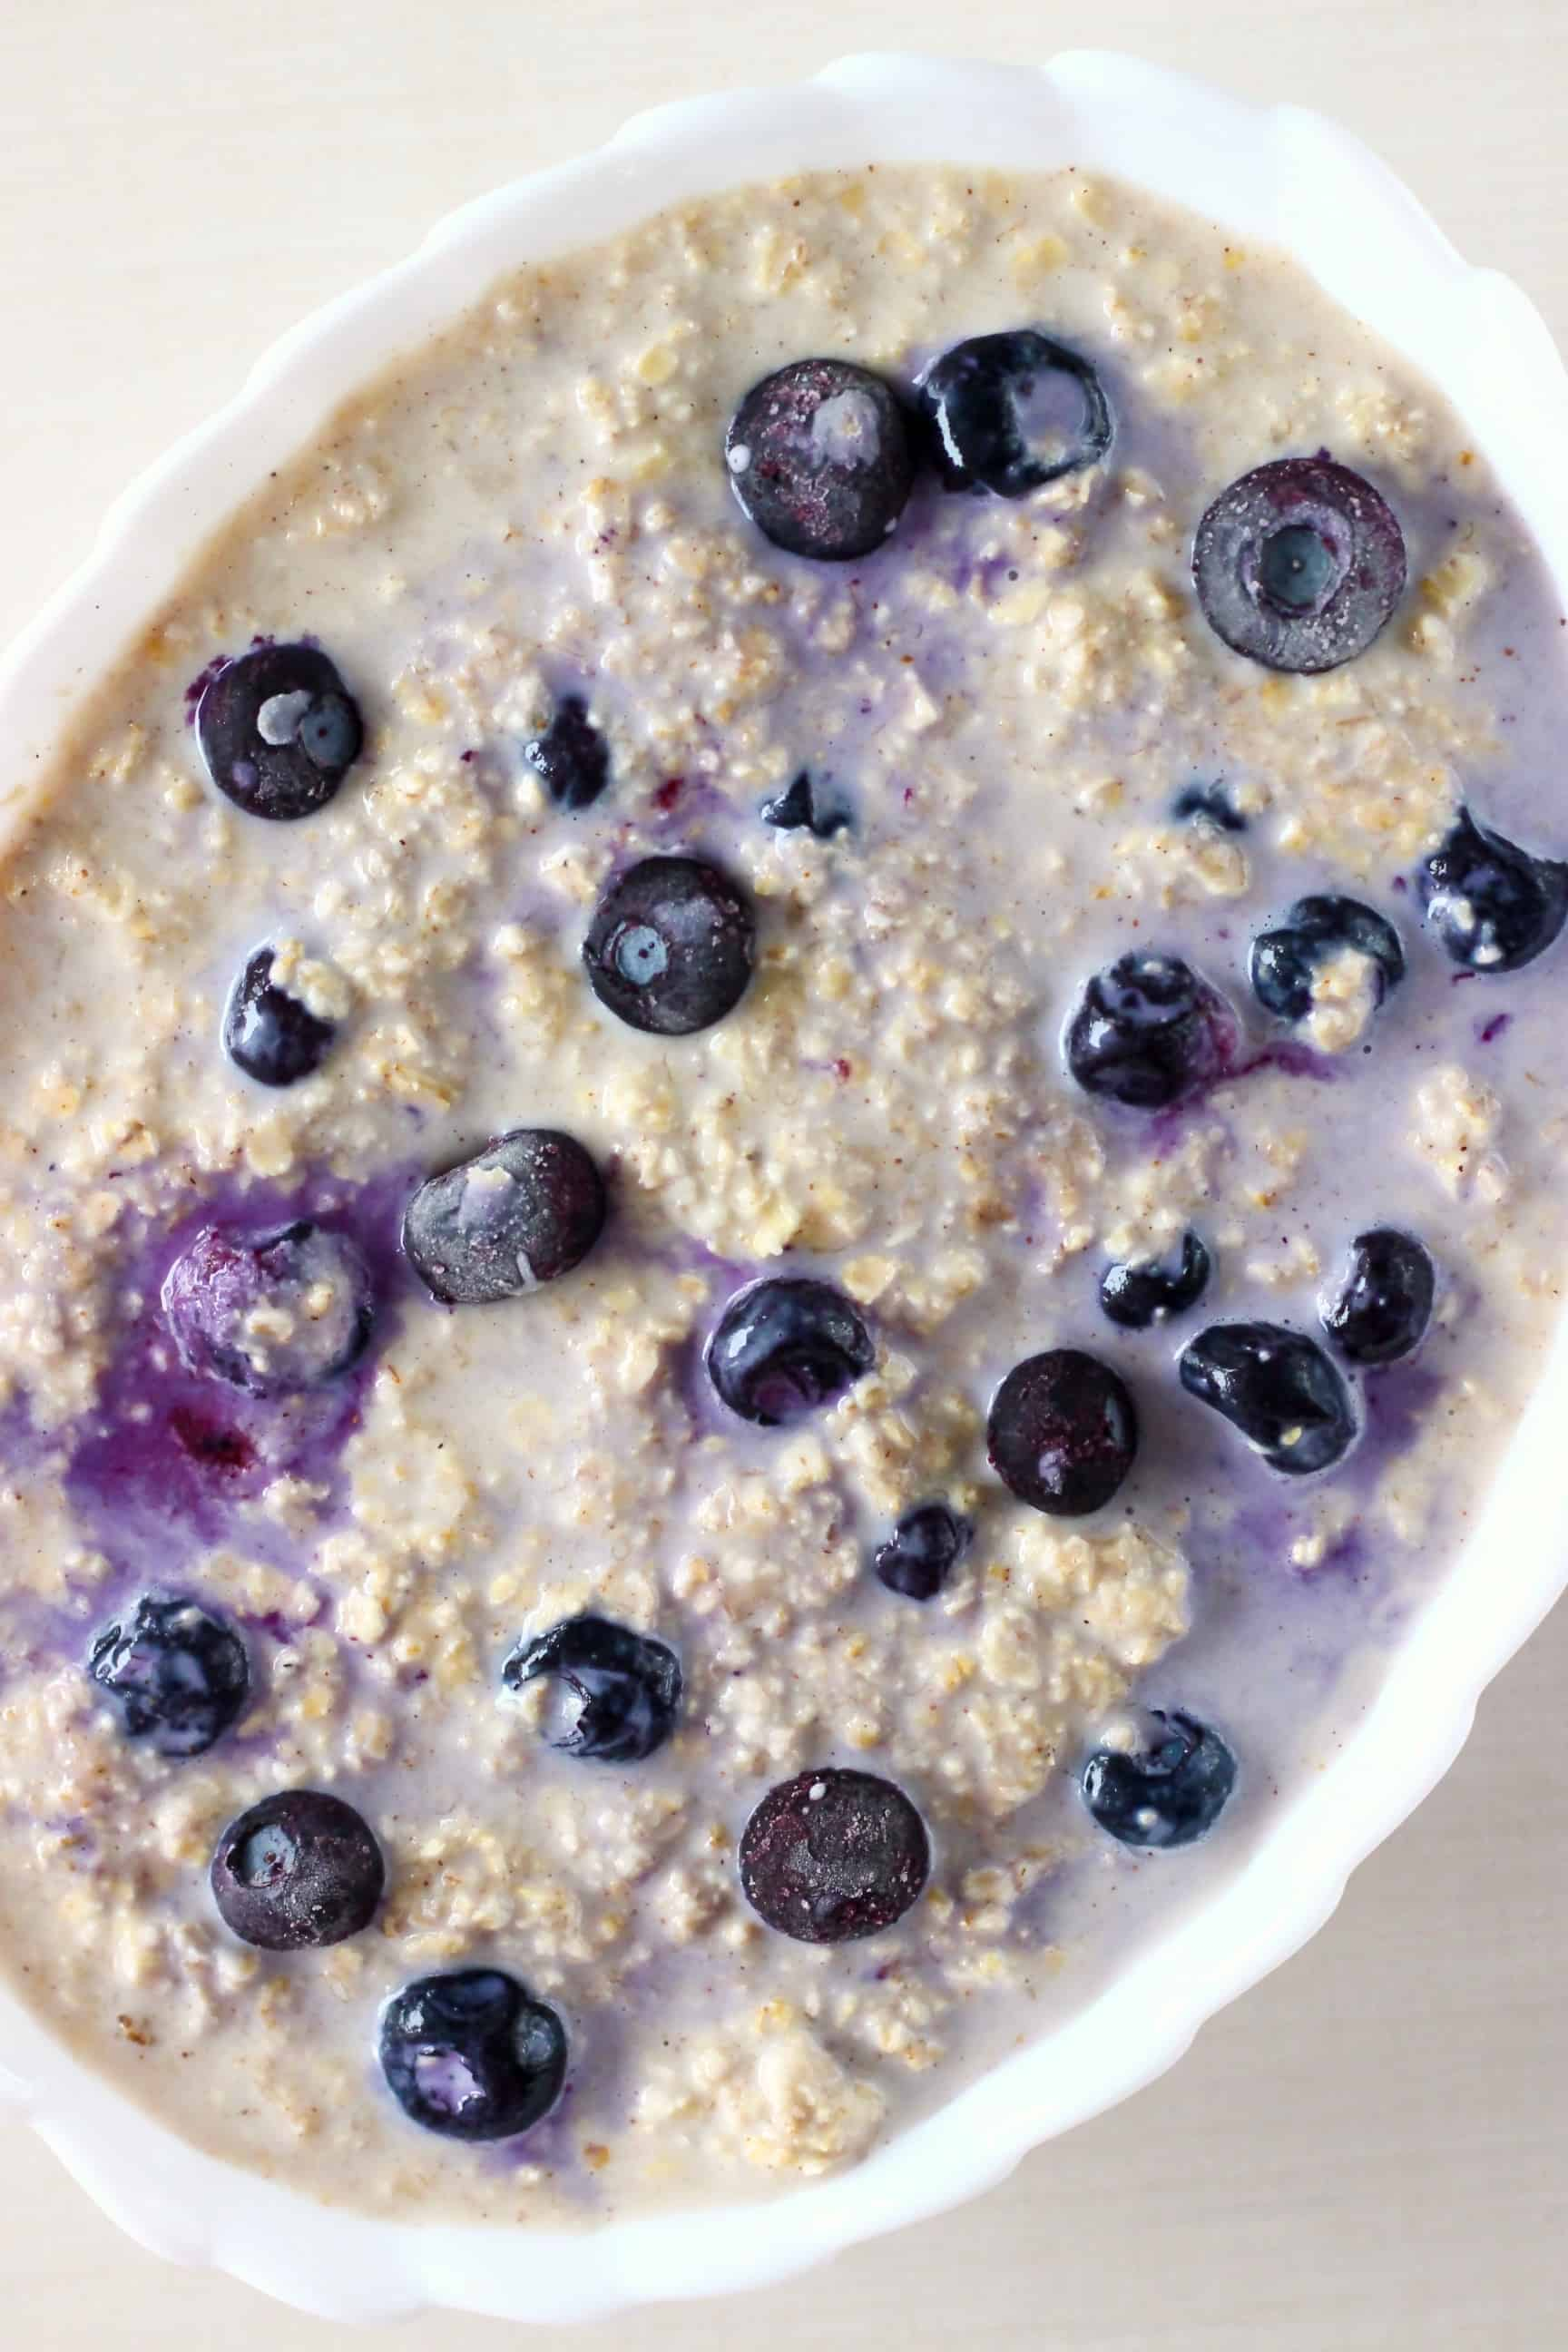 Raw vegan blueberry banana baked oatmeal mixture in a mixing bowl in a white oval baking dish